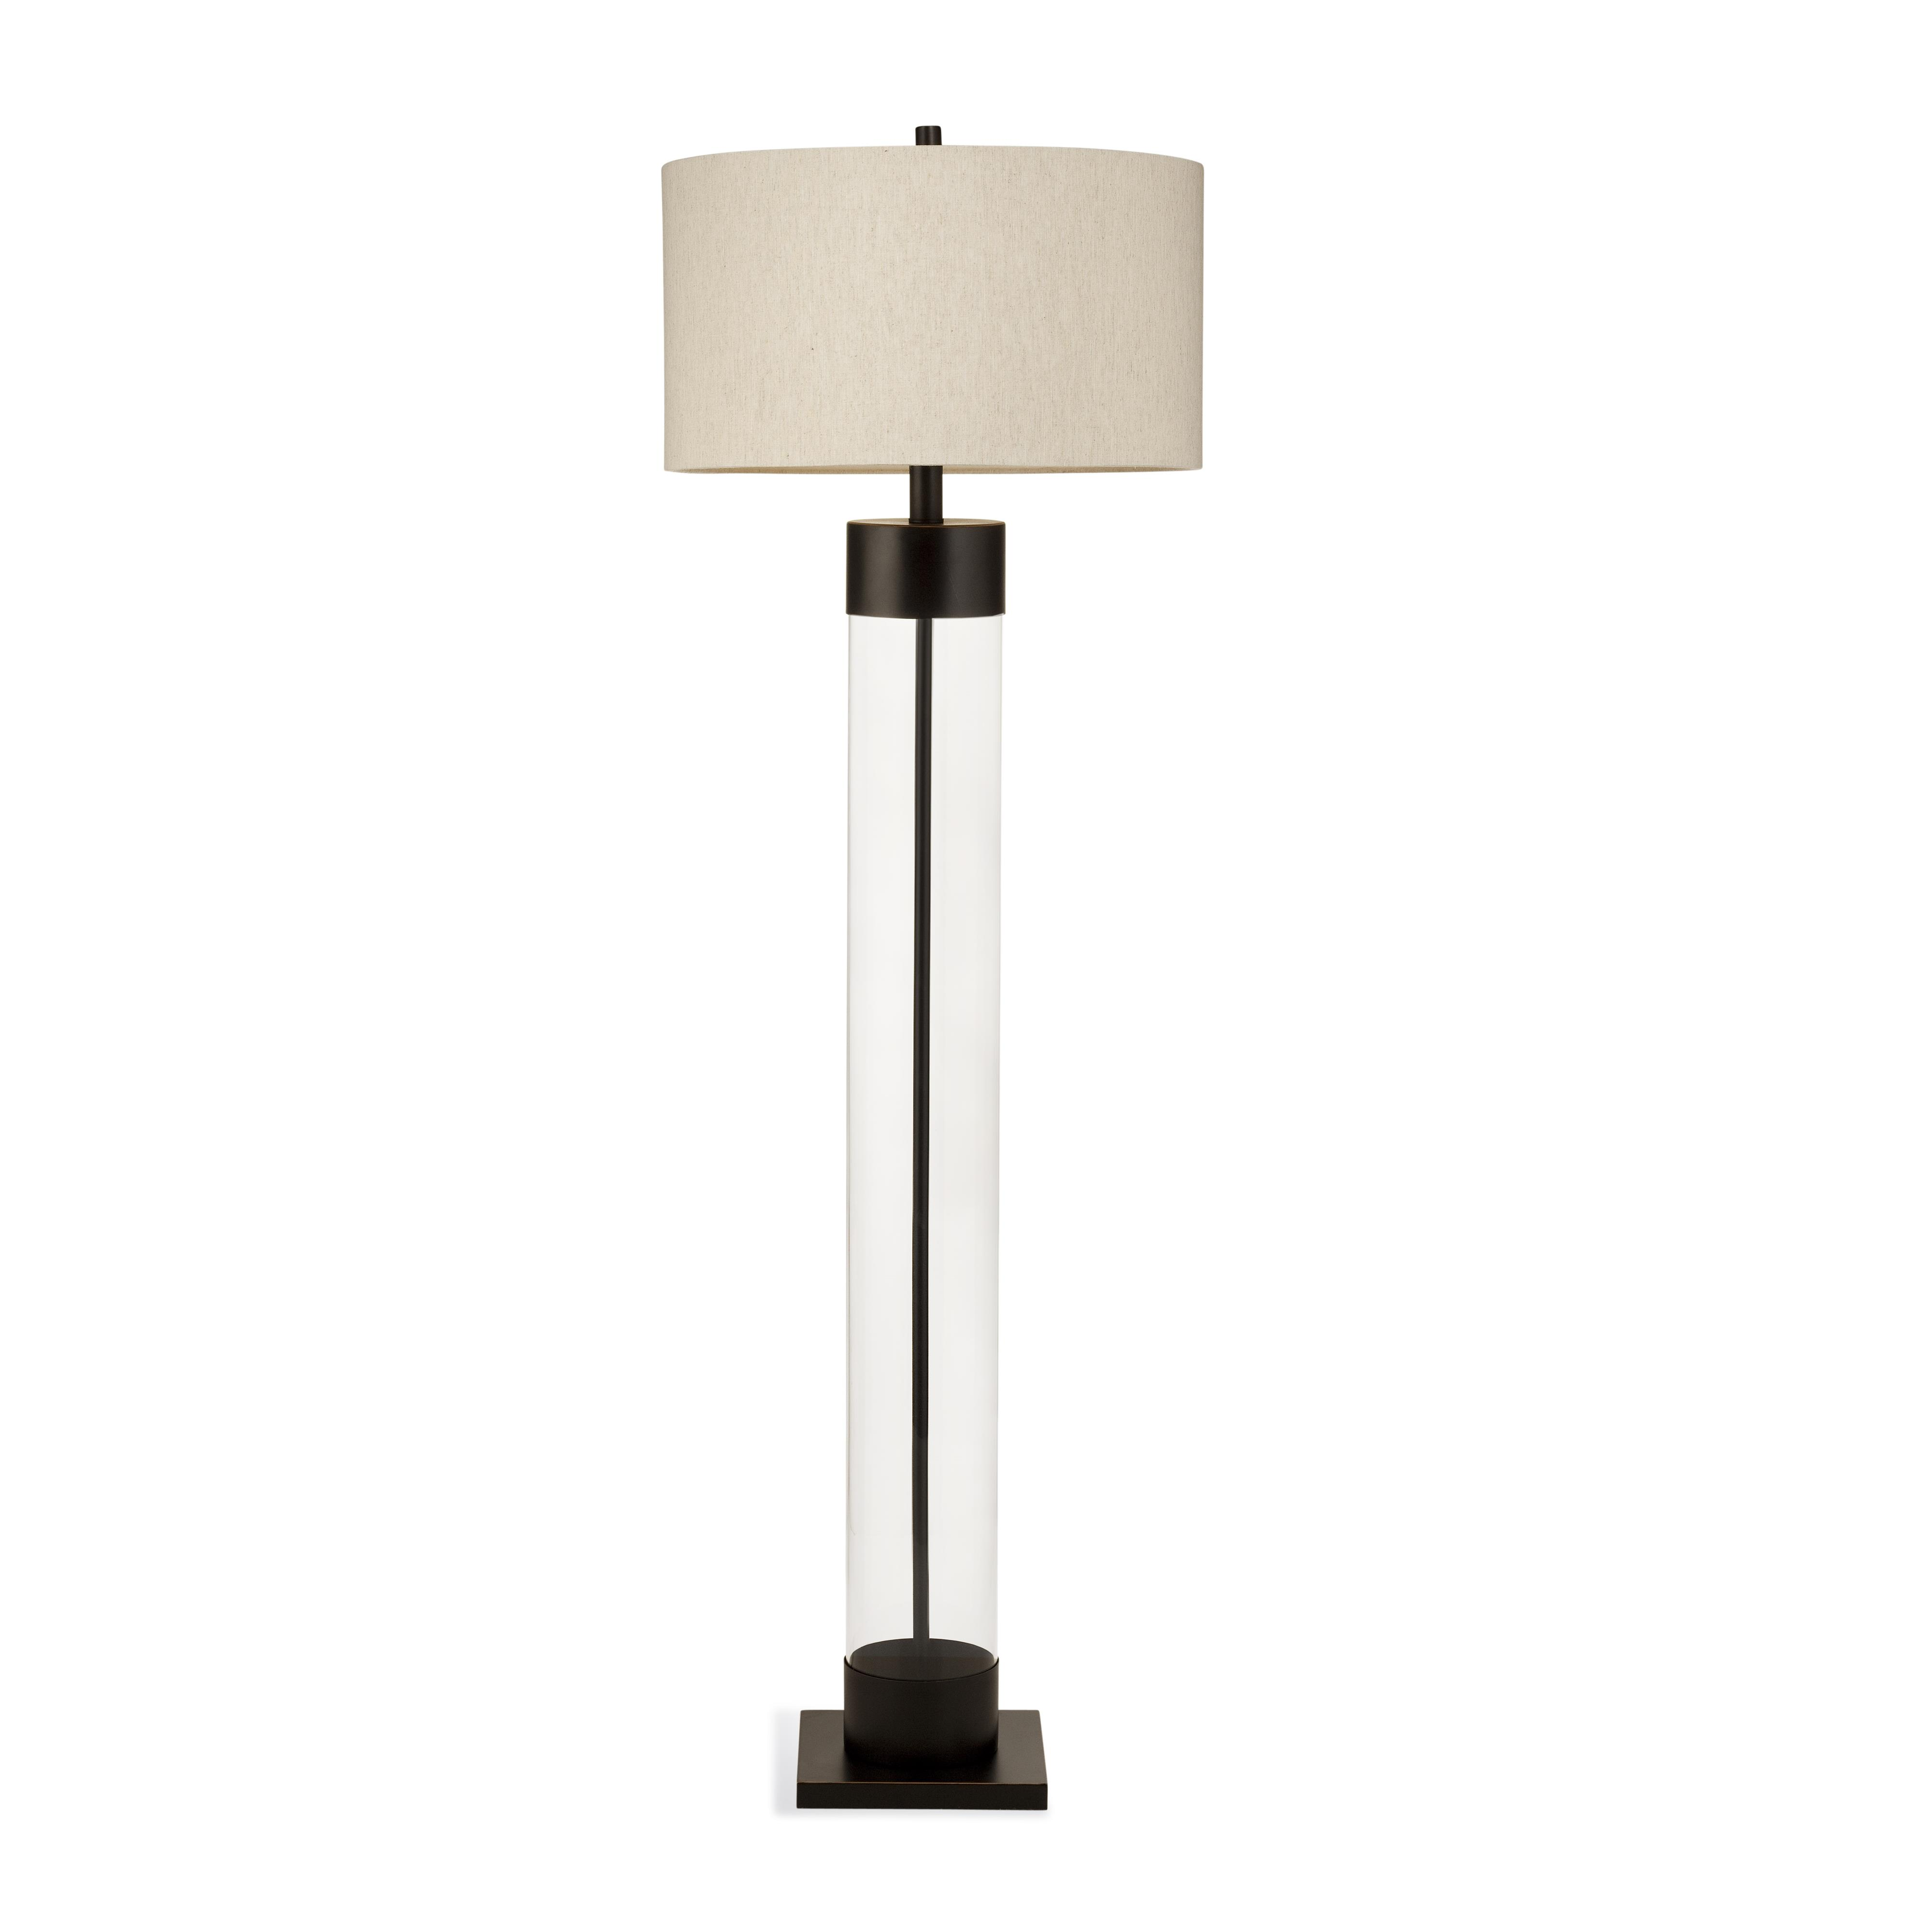 Belgian Luxe Haines Floor Lamp by Bassett Mirror at Alison Craig Home Furnishings